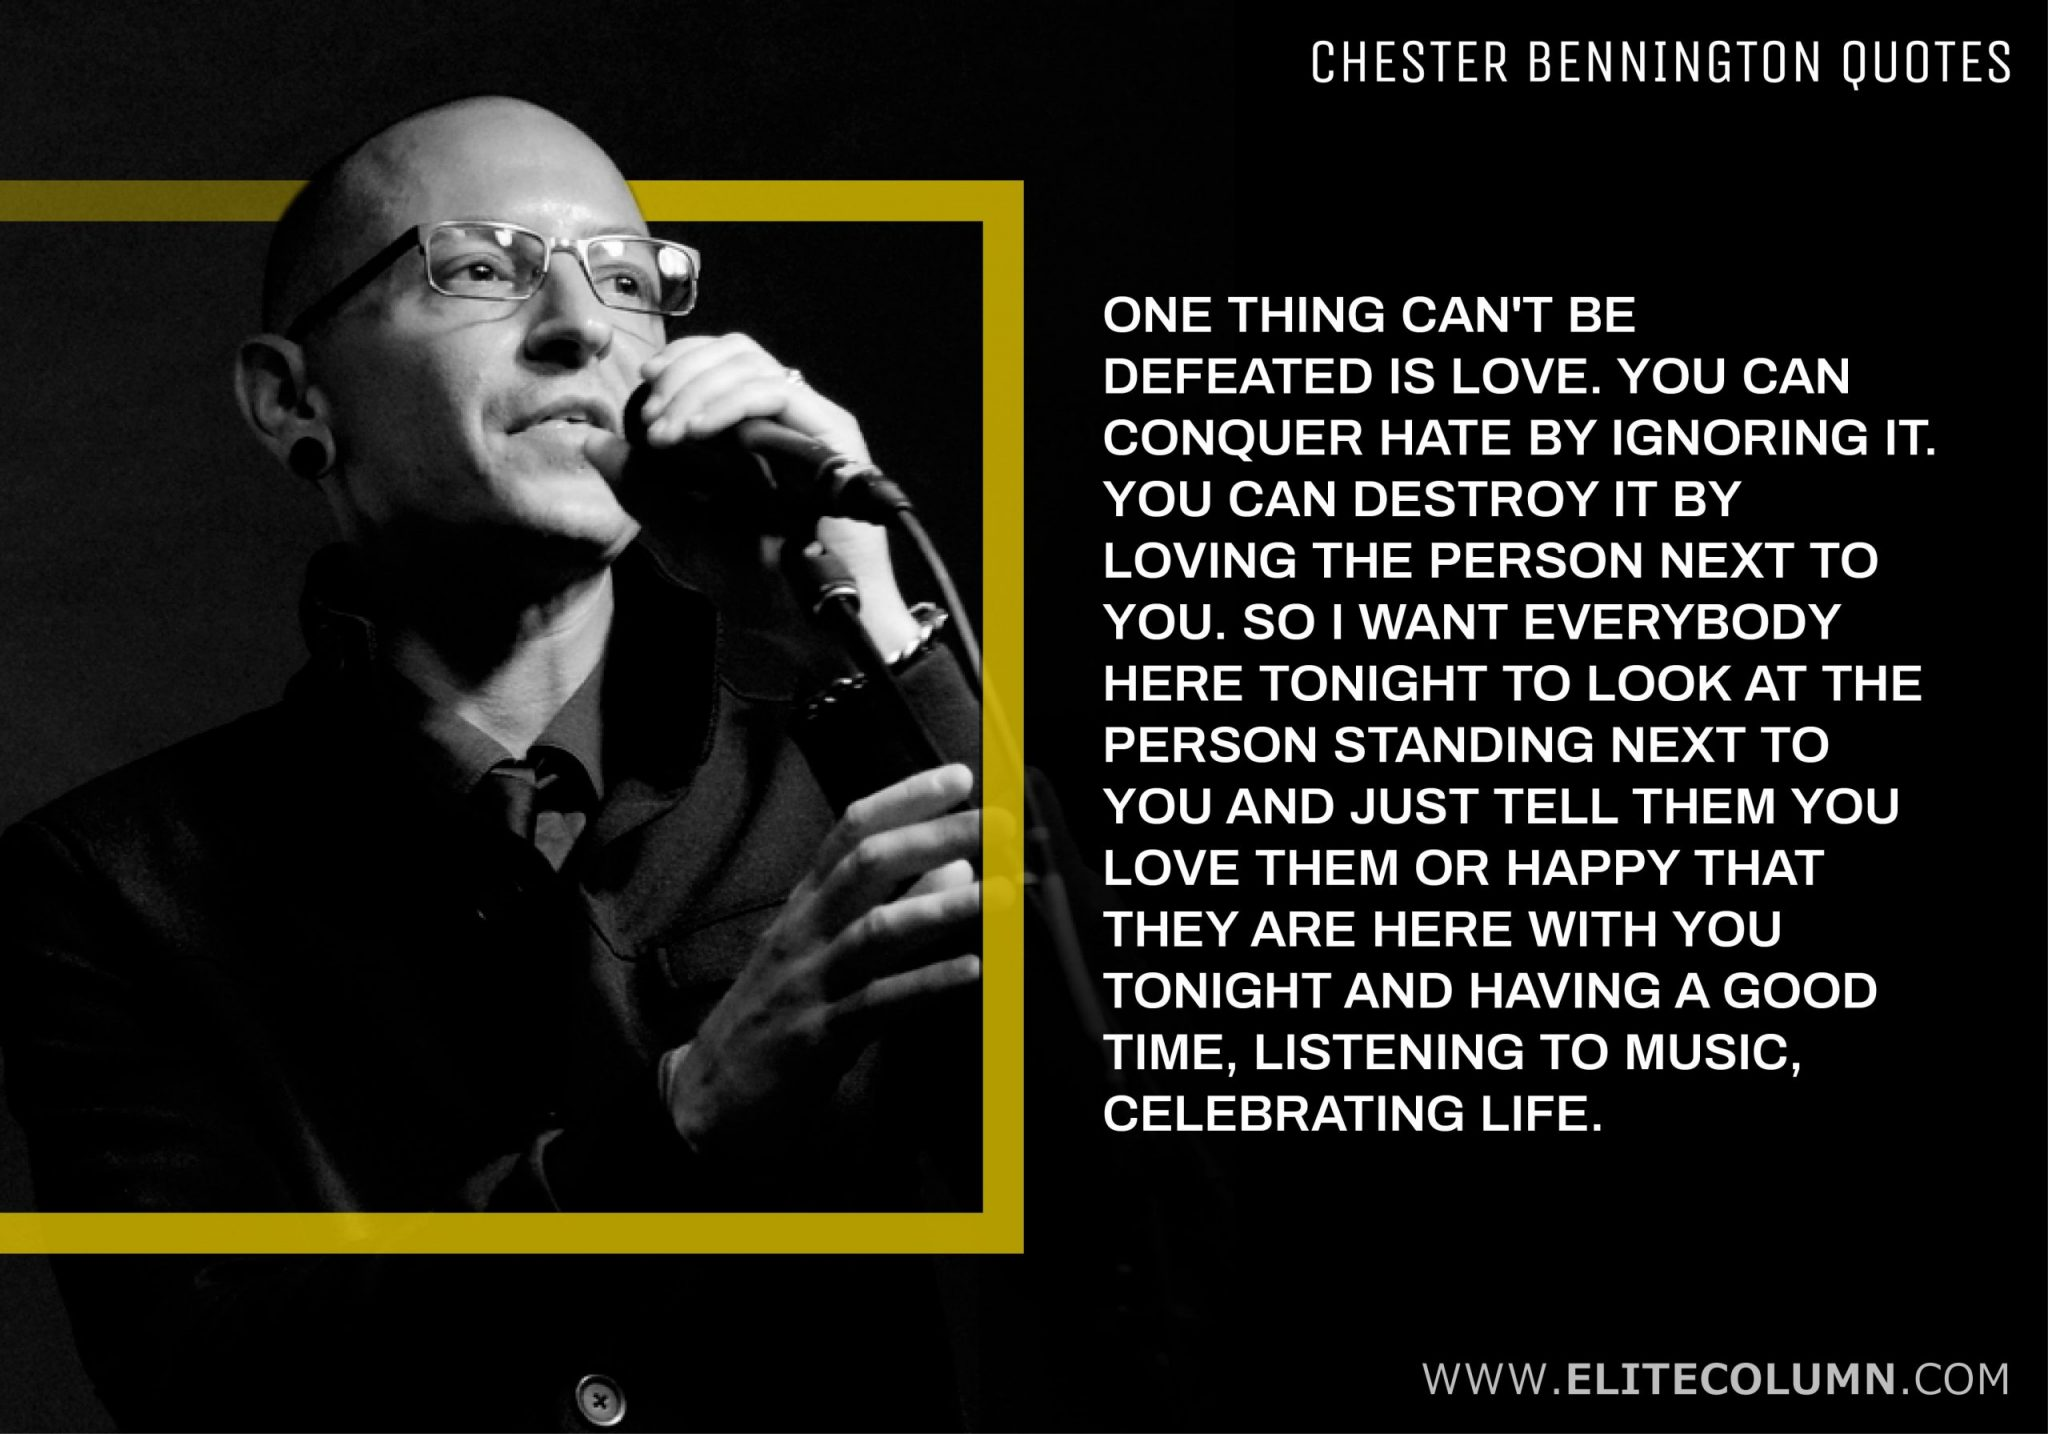 Chester Bennington Quotes (7)